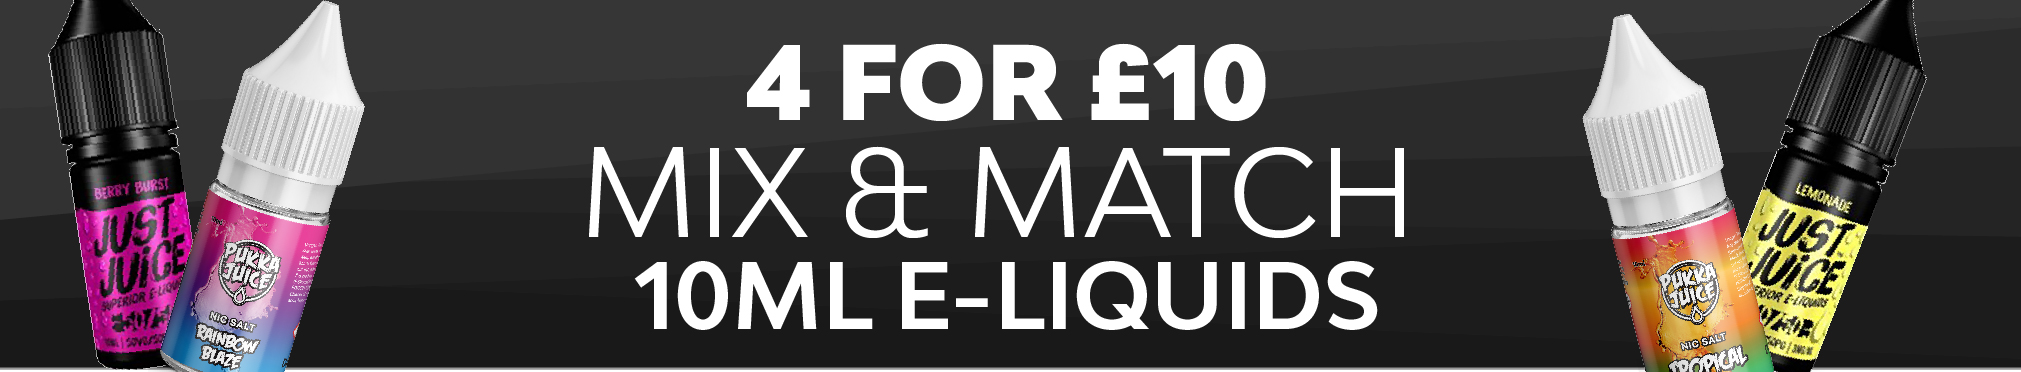 Mix & Match 4 for £10